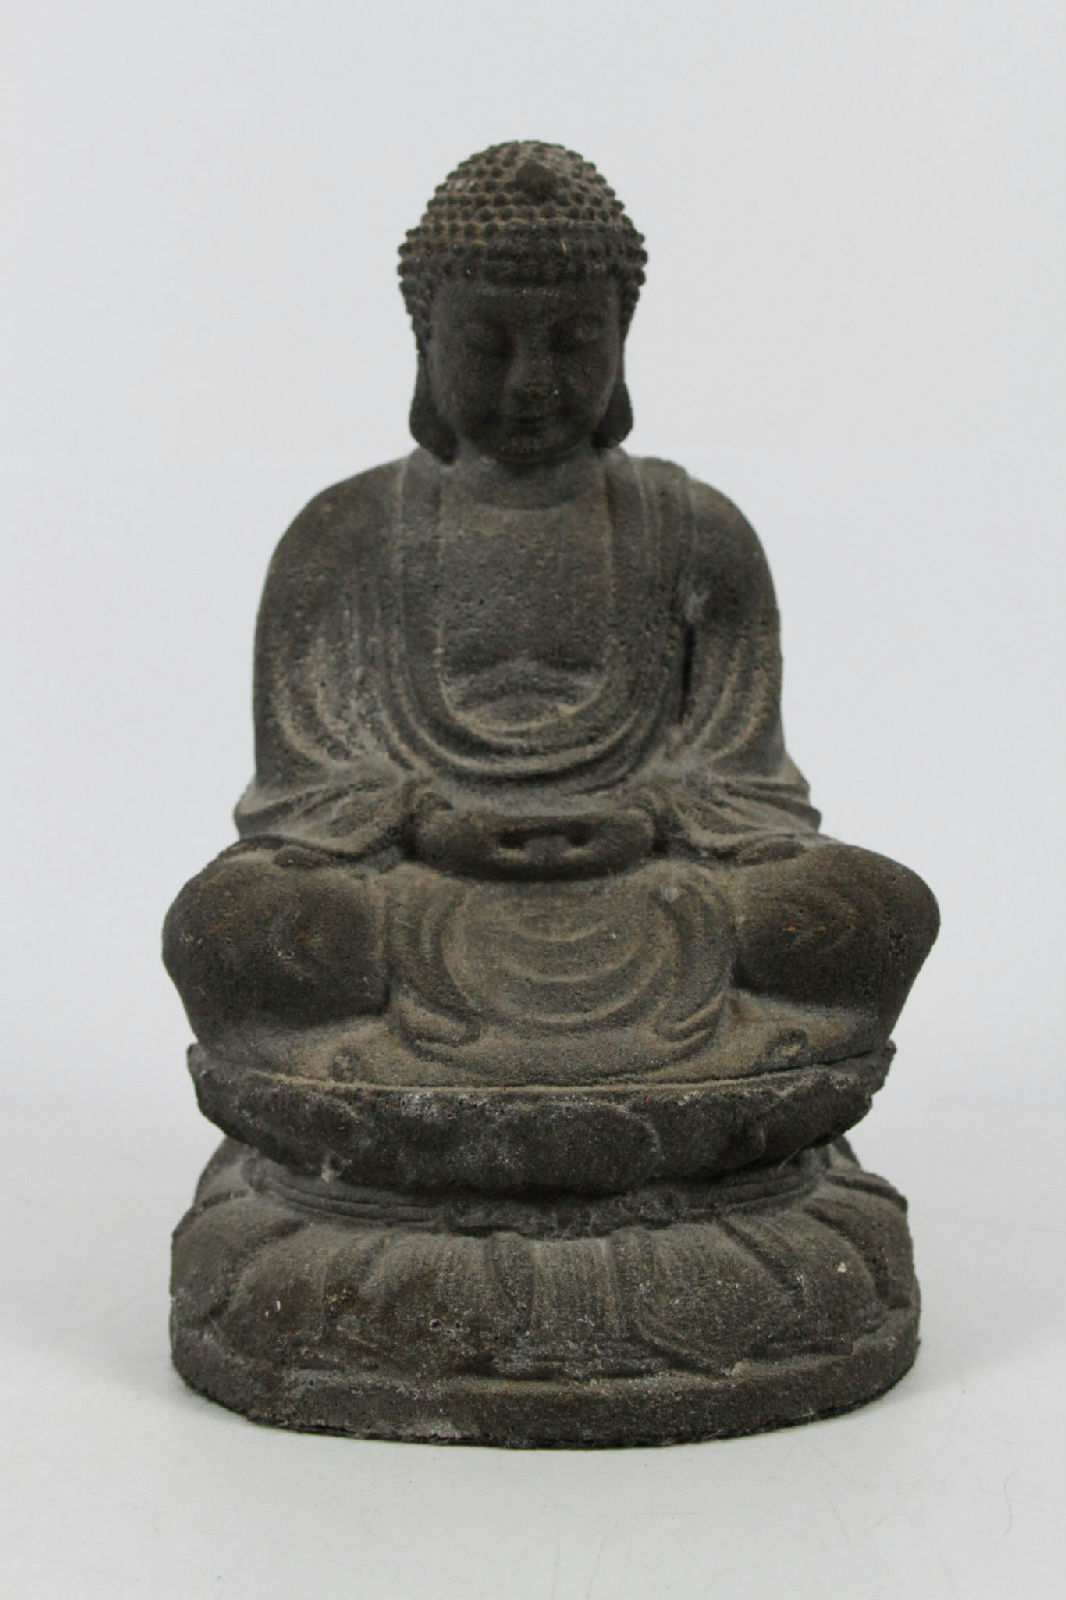 buddha meditating peace tranquility garden zen solid concrete home decor statue ebay. Black Bedroom Furniture Sets. Home Design Ideas